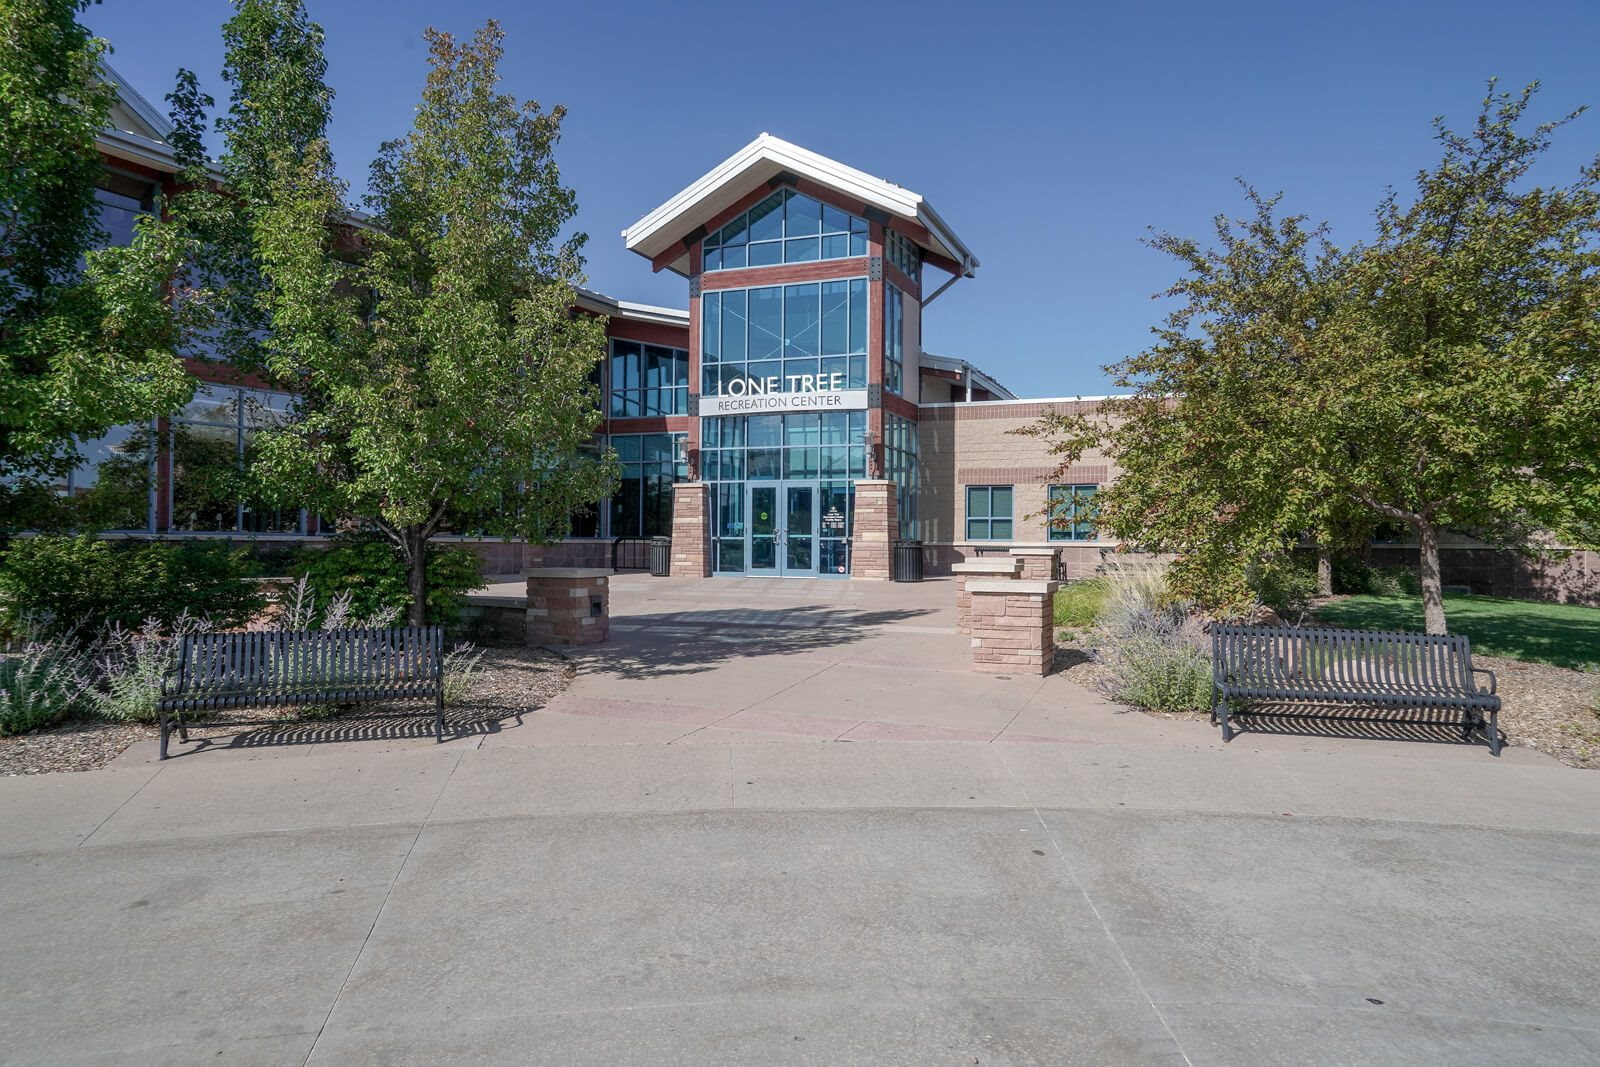 Lone Tree Recreation Center near Windsor at Meridian, Englewood, Colorado